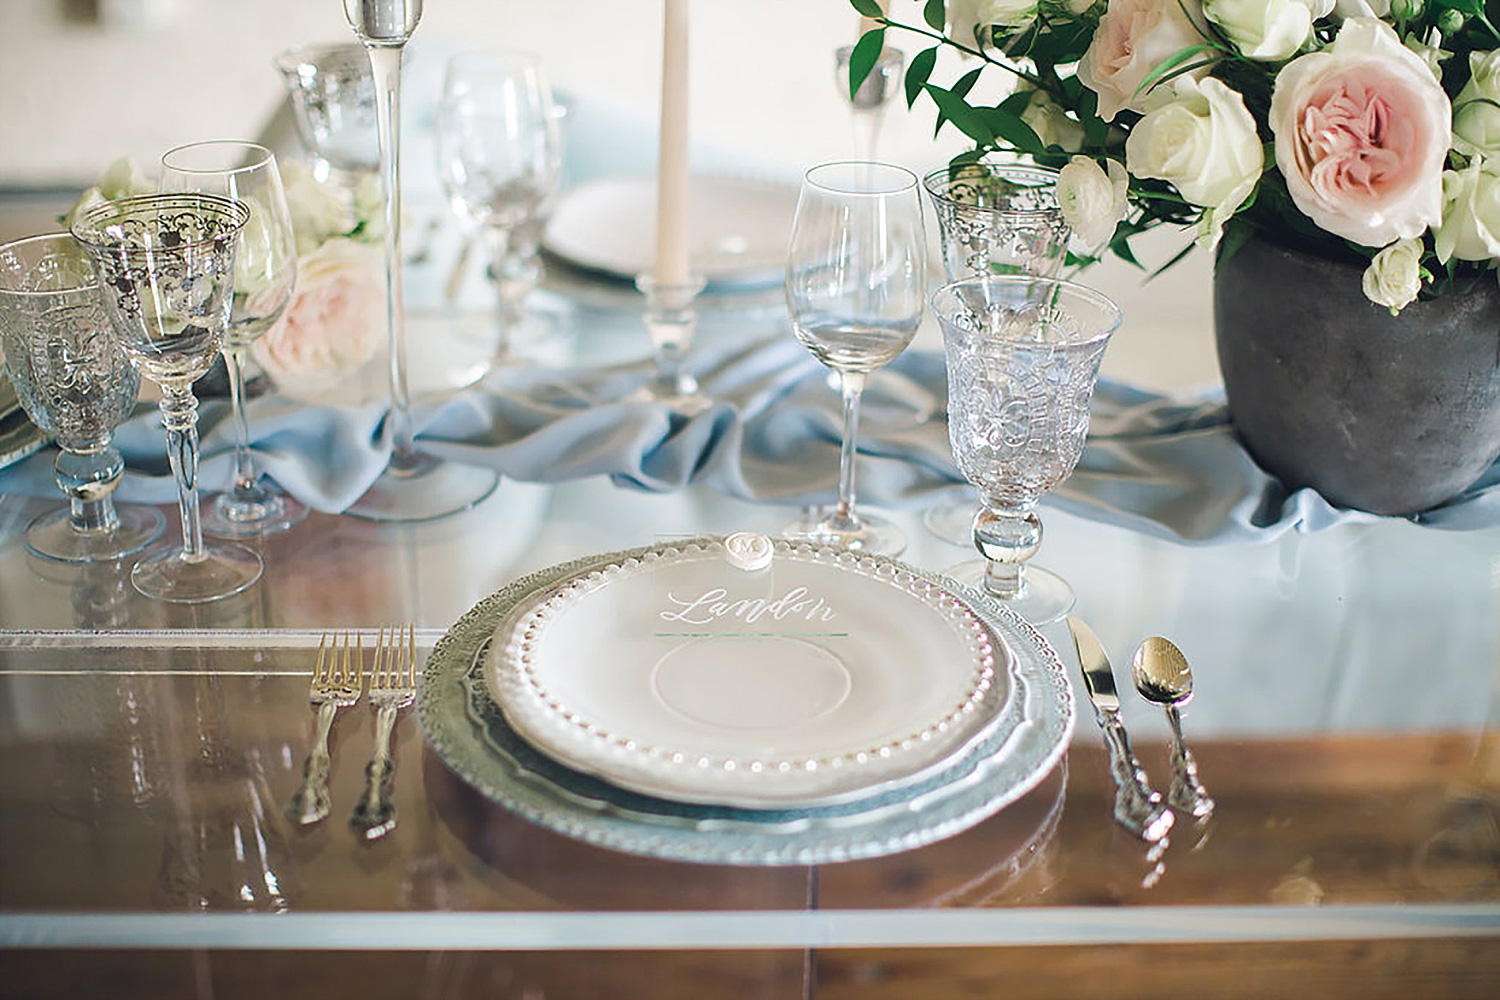 Dusty blue place setting with a acrylic place card with a white wax seal